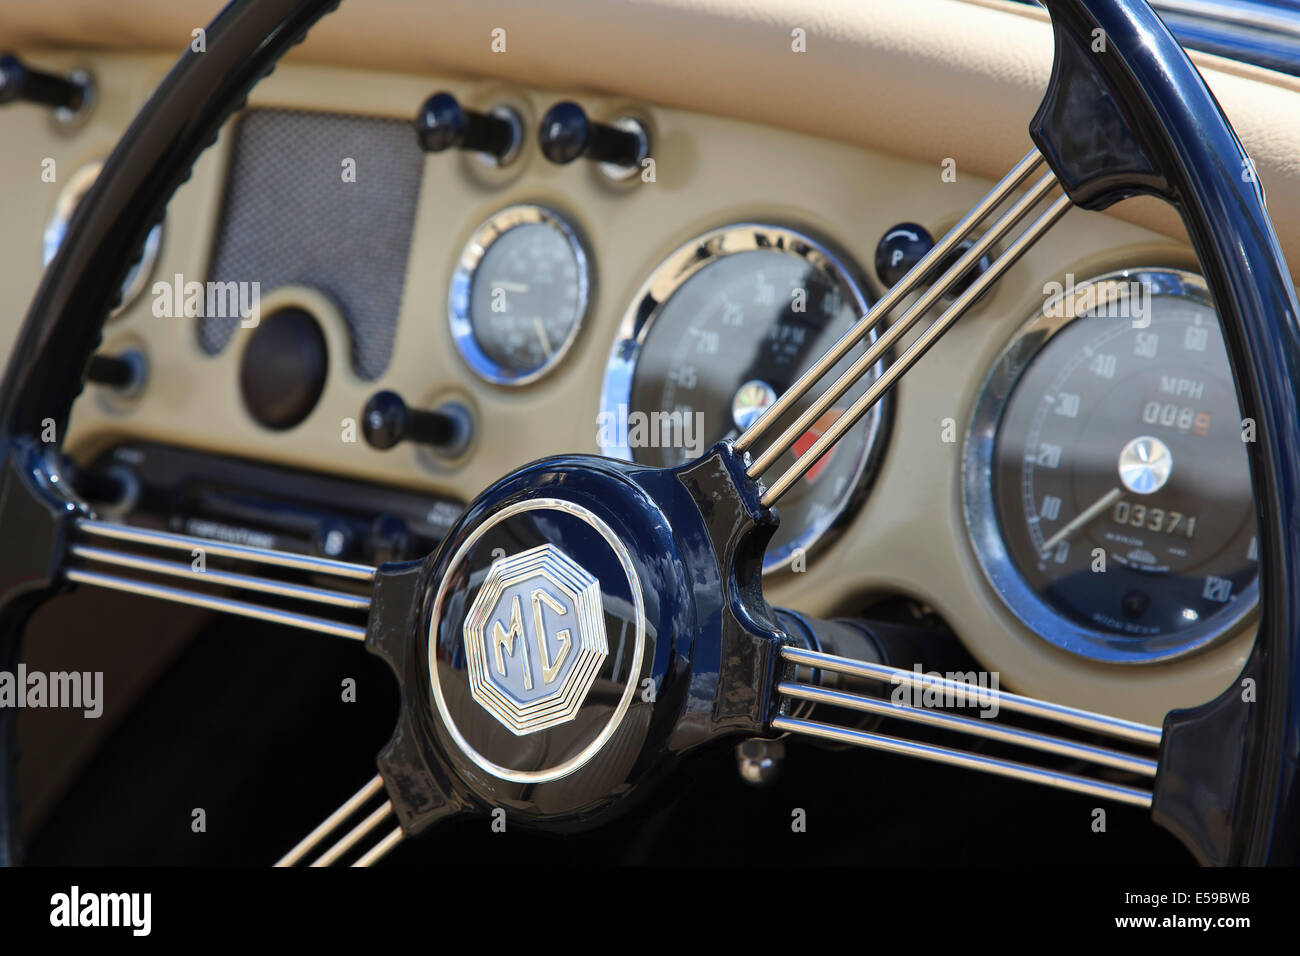 Transport, Cars, Old, Classic car show, detail of classic MG